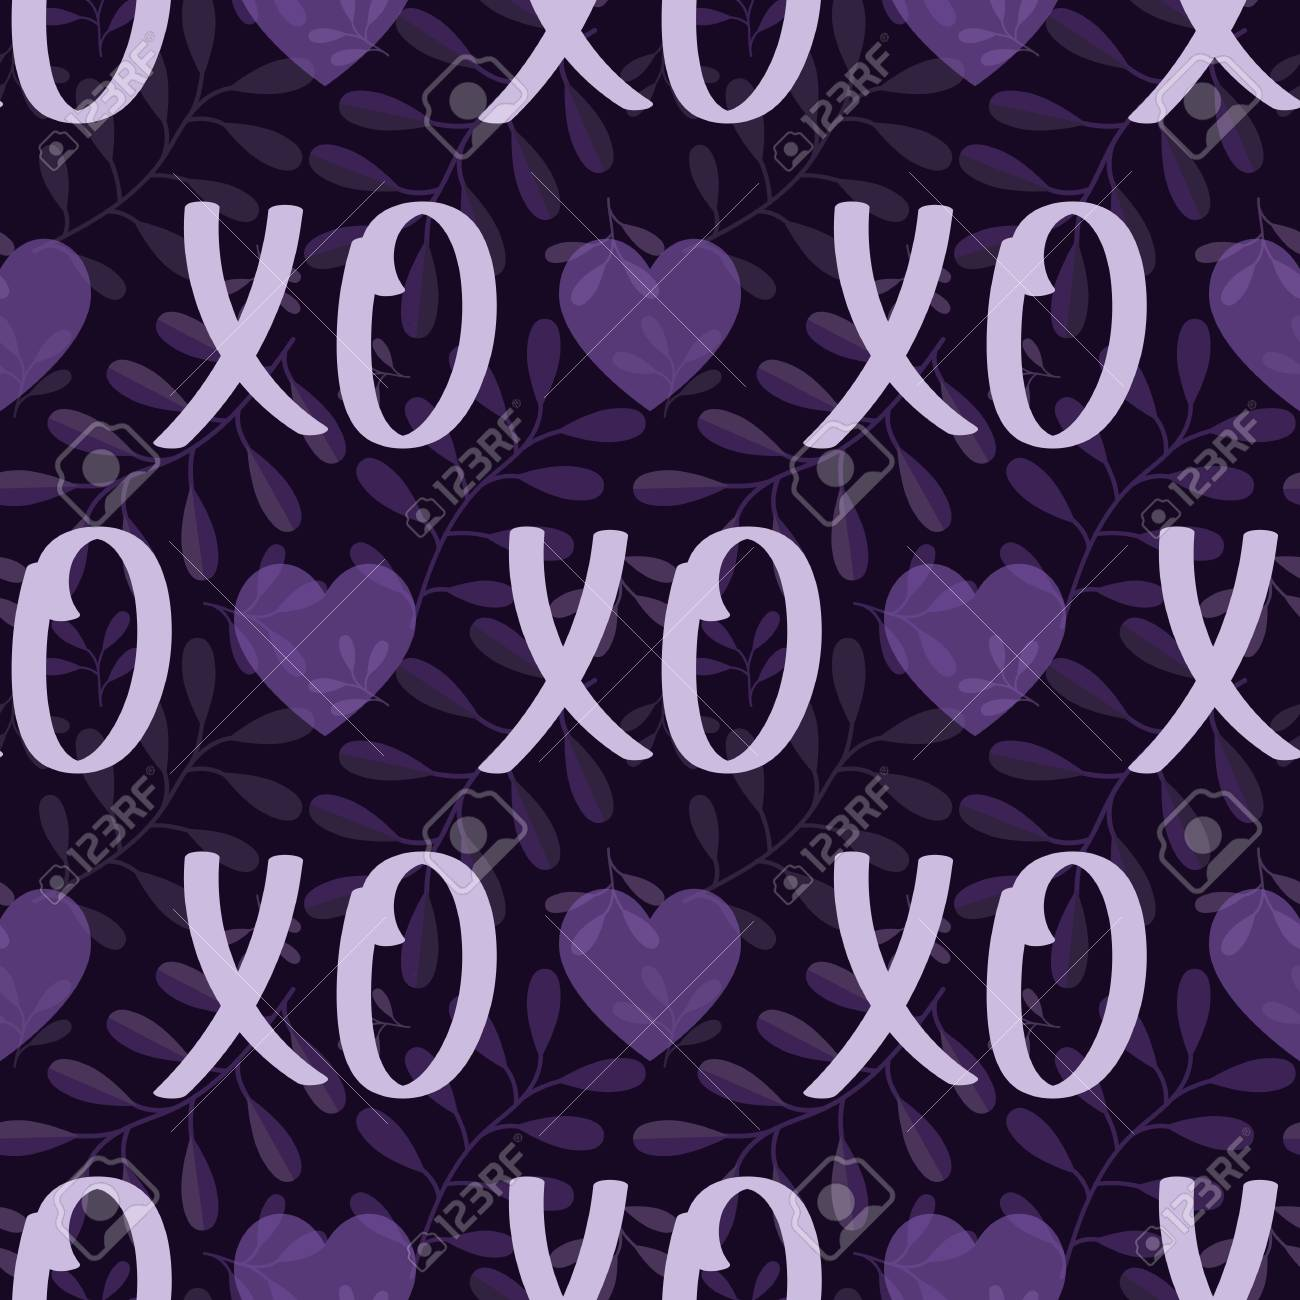 Patterns Hearts And Hugs And Kisses Xoxo Modern Valentines Day